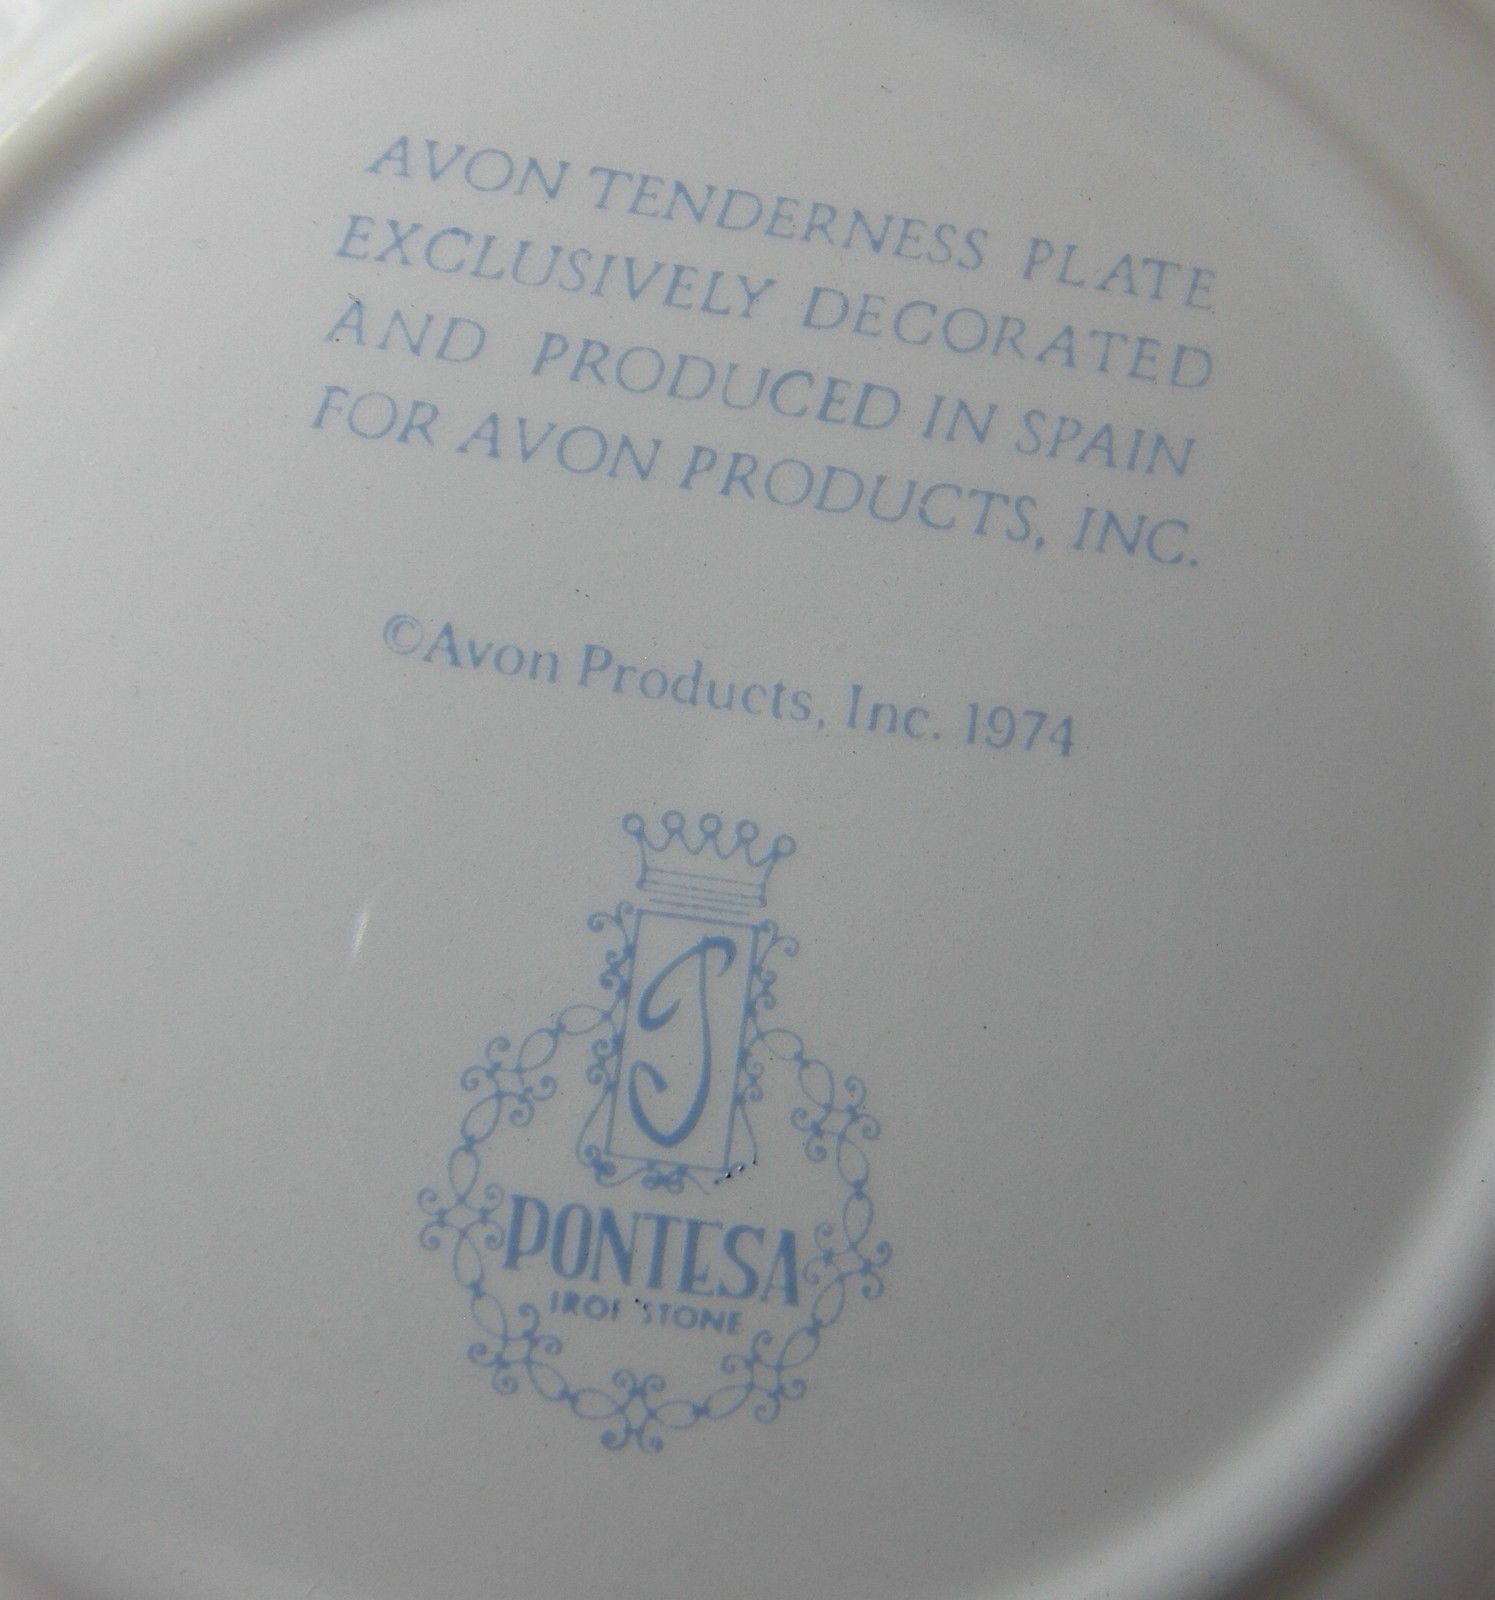 """AVON TENDERNESS Decorative PLATE MOTHER & CHILDREN 1974 by ANDERSON 9.25"""" Spain image 2"""